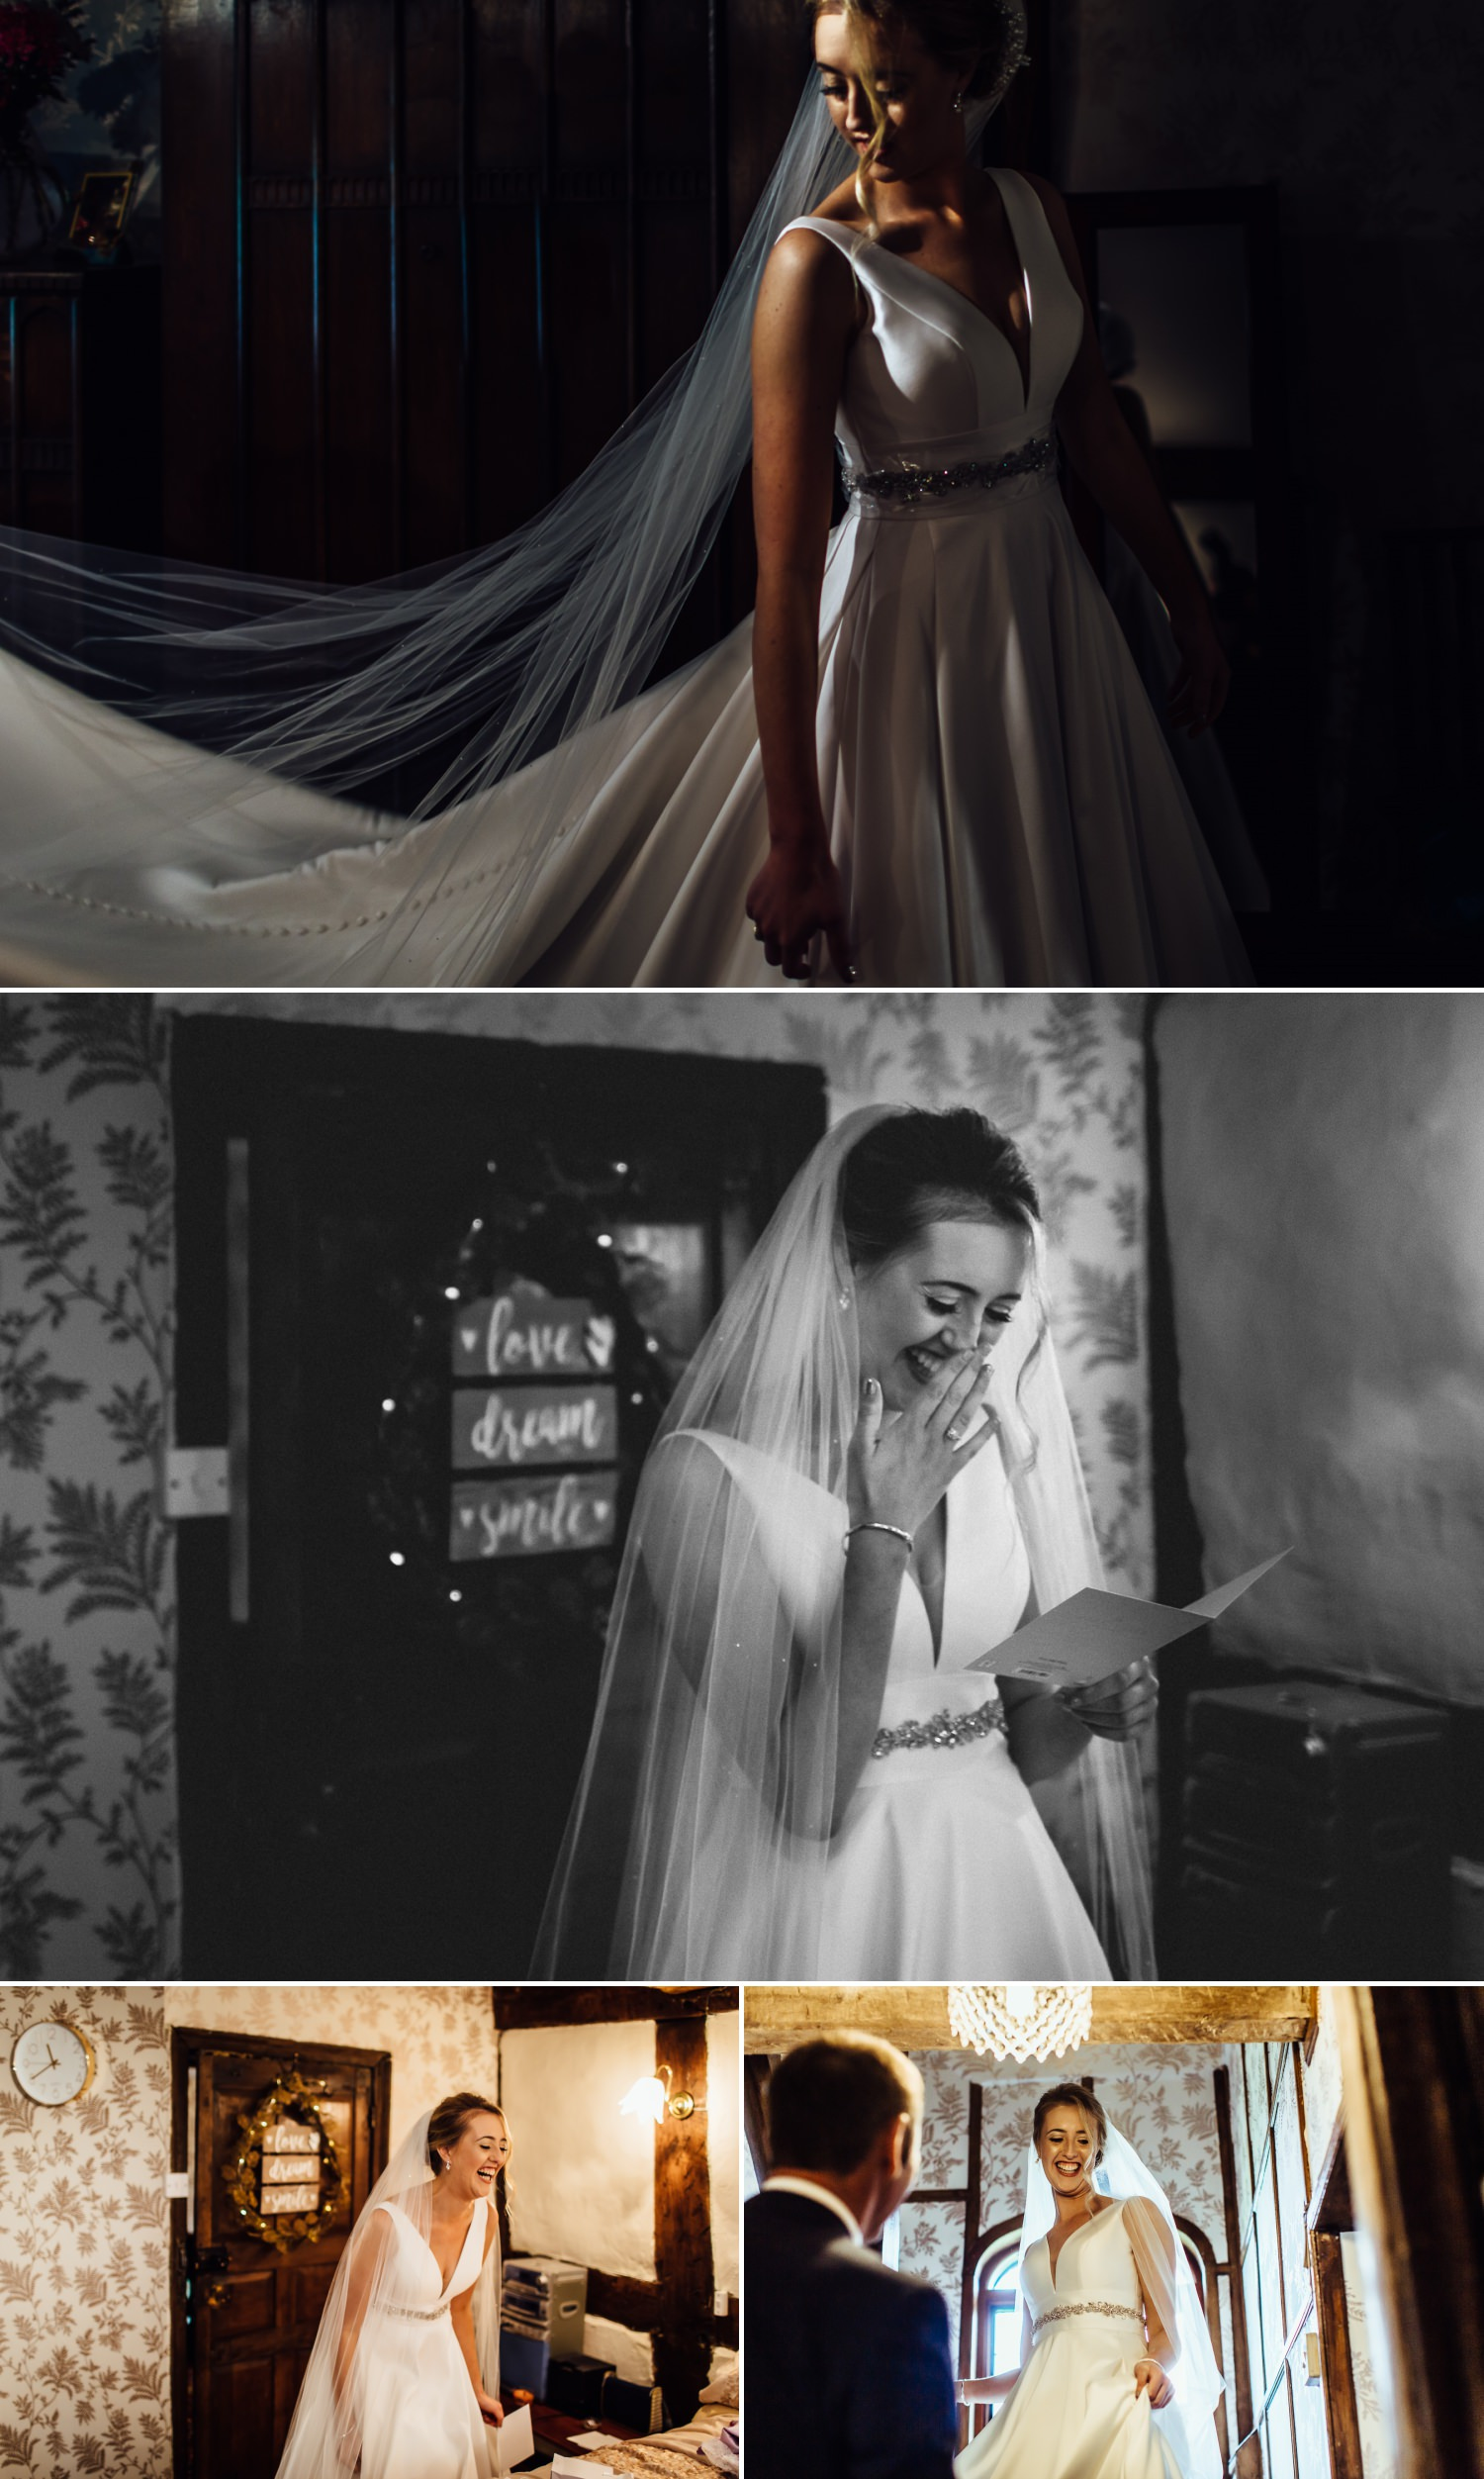 Wedding photography of bride in dress